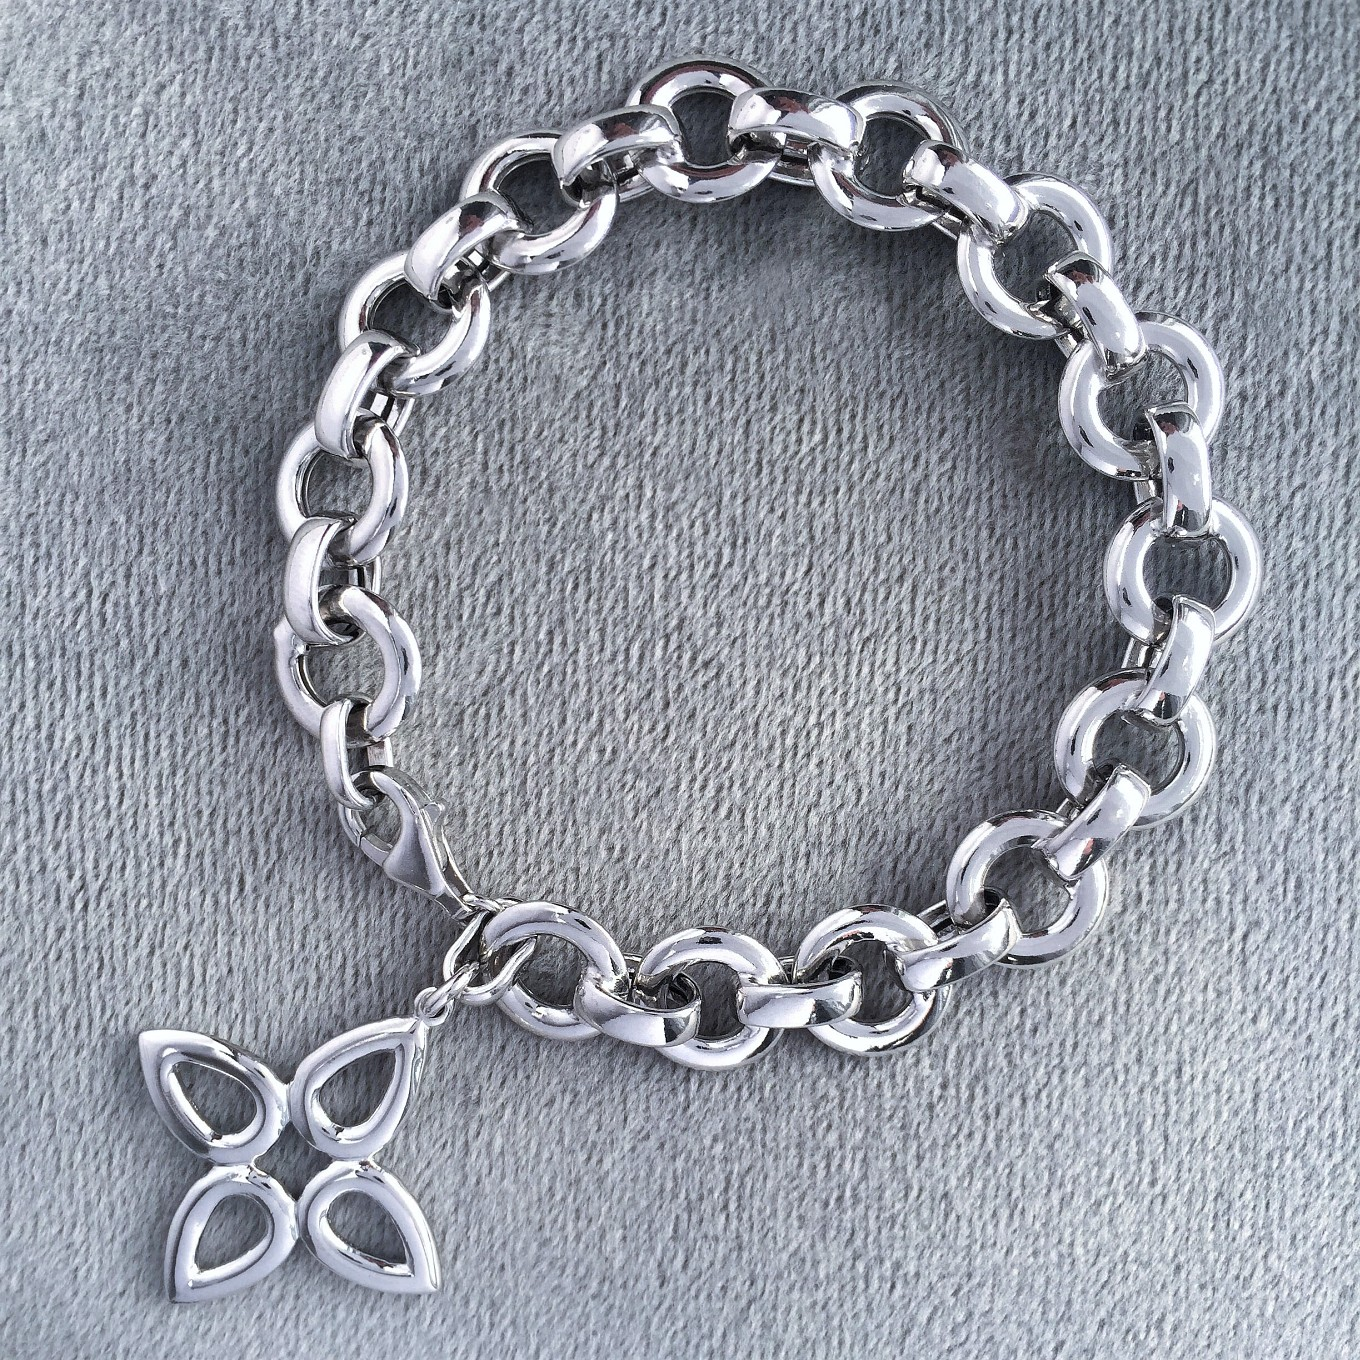 """Cable"" bracelet in sterling silver with sevilla motif clasp"